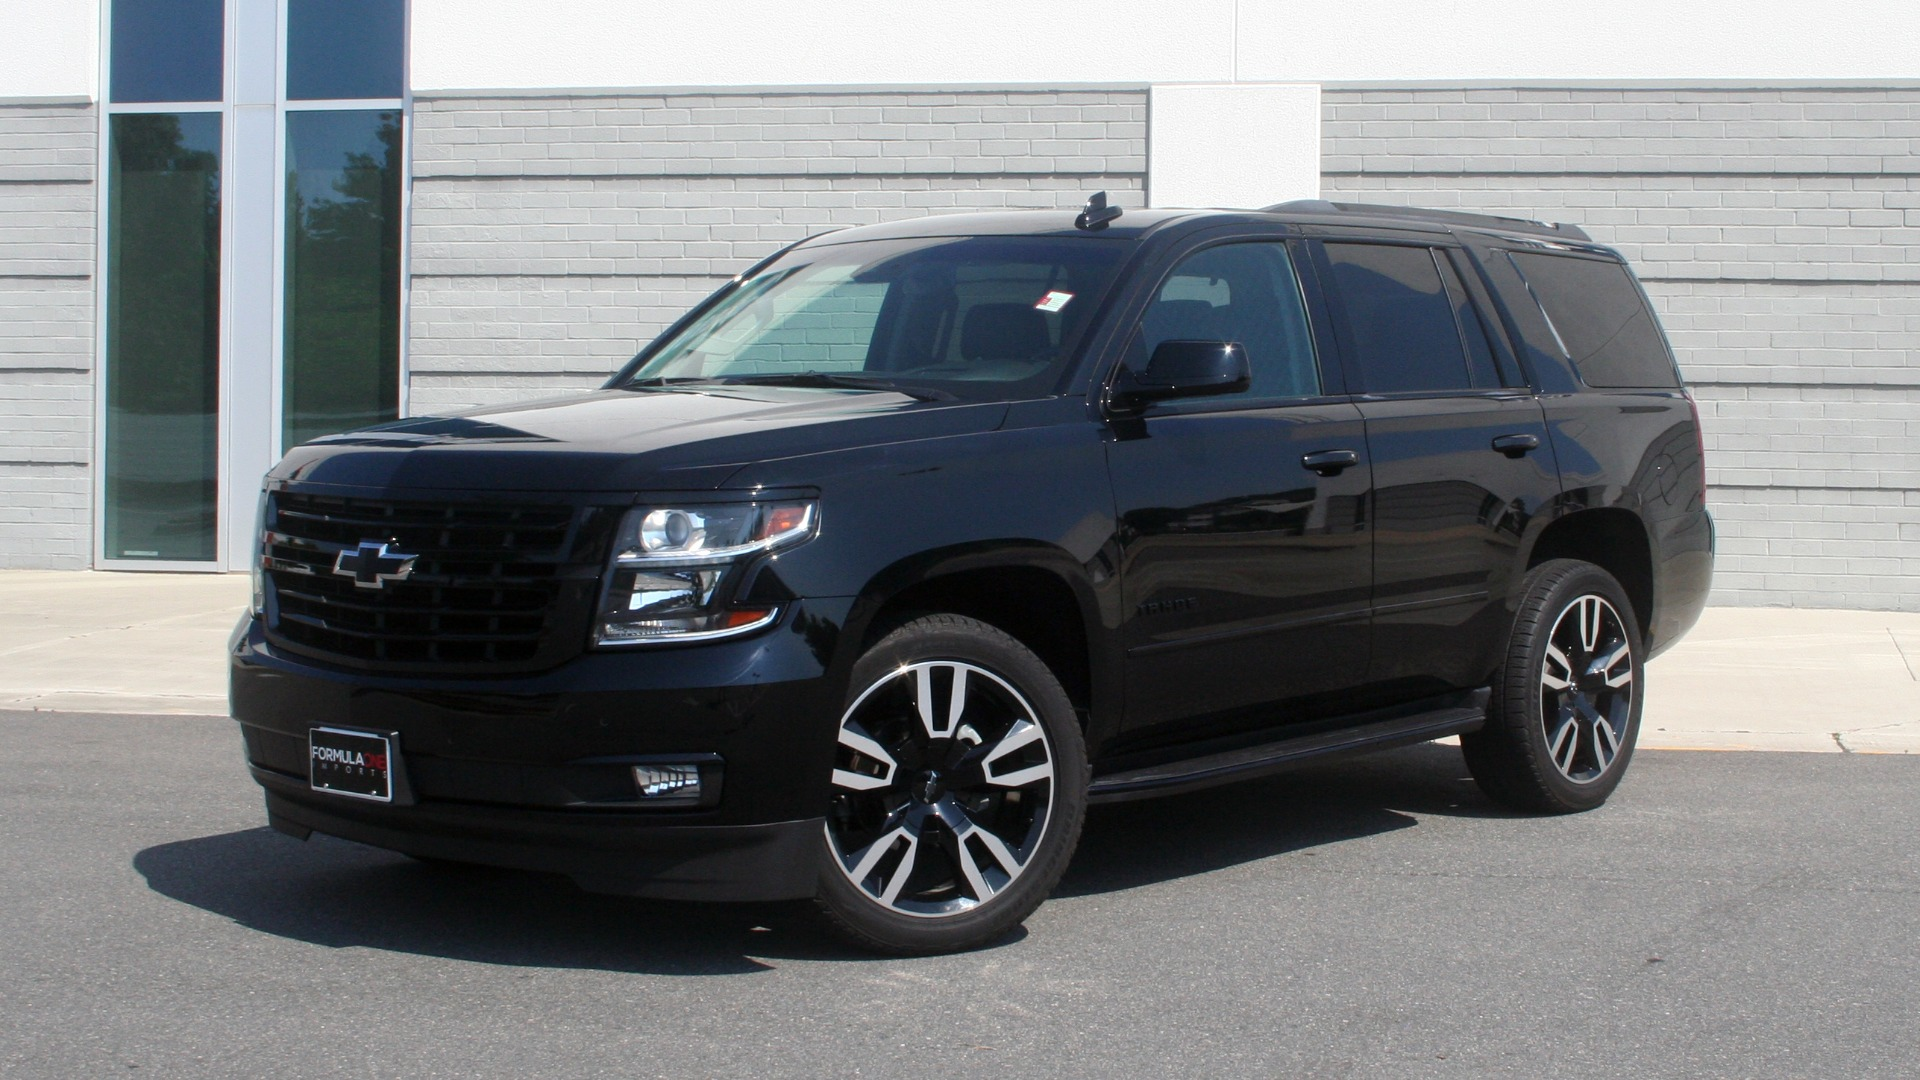 Used 2018 Chevrolet TAHOE PREMIER RST / 4X4 / NAV / BOSE / SUNROOF / 3-ROW / REARVIEW for sale $65,995 at Formula Imports in Charlotte NC 28227 1